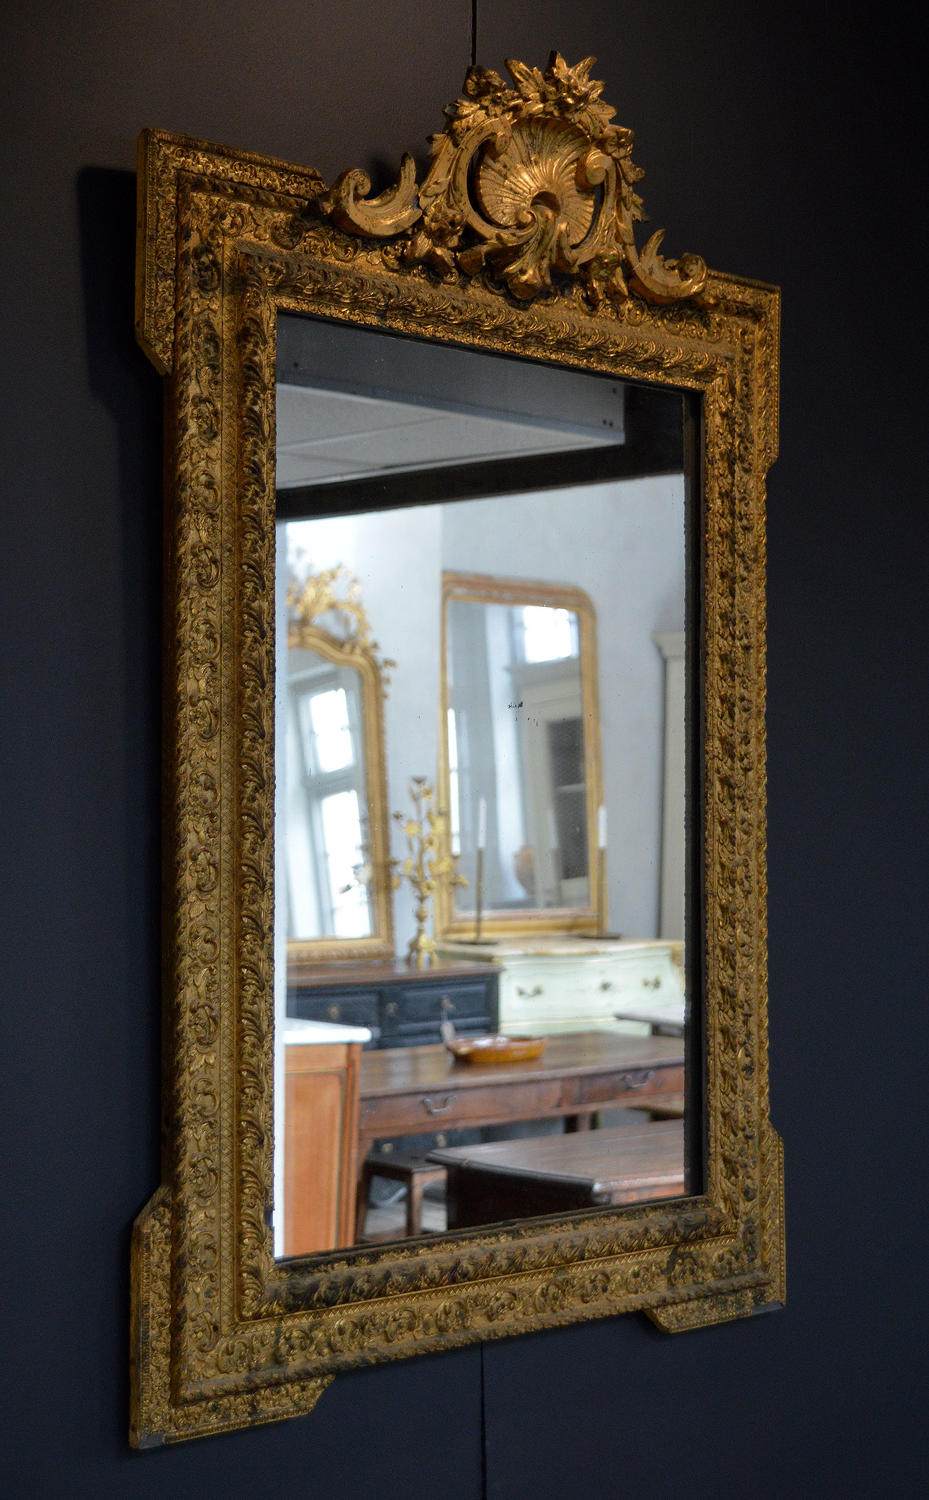 Late 19th Century Gilt frame Louis XVI style wall mirror